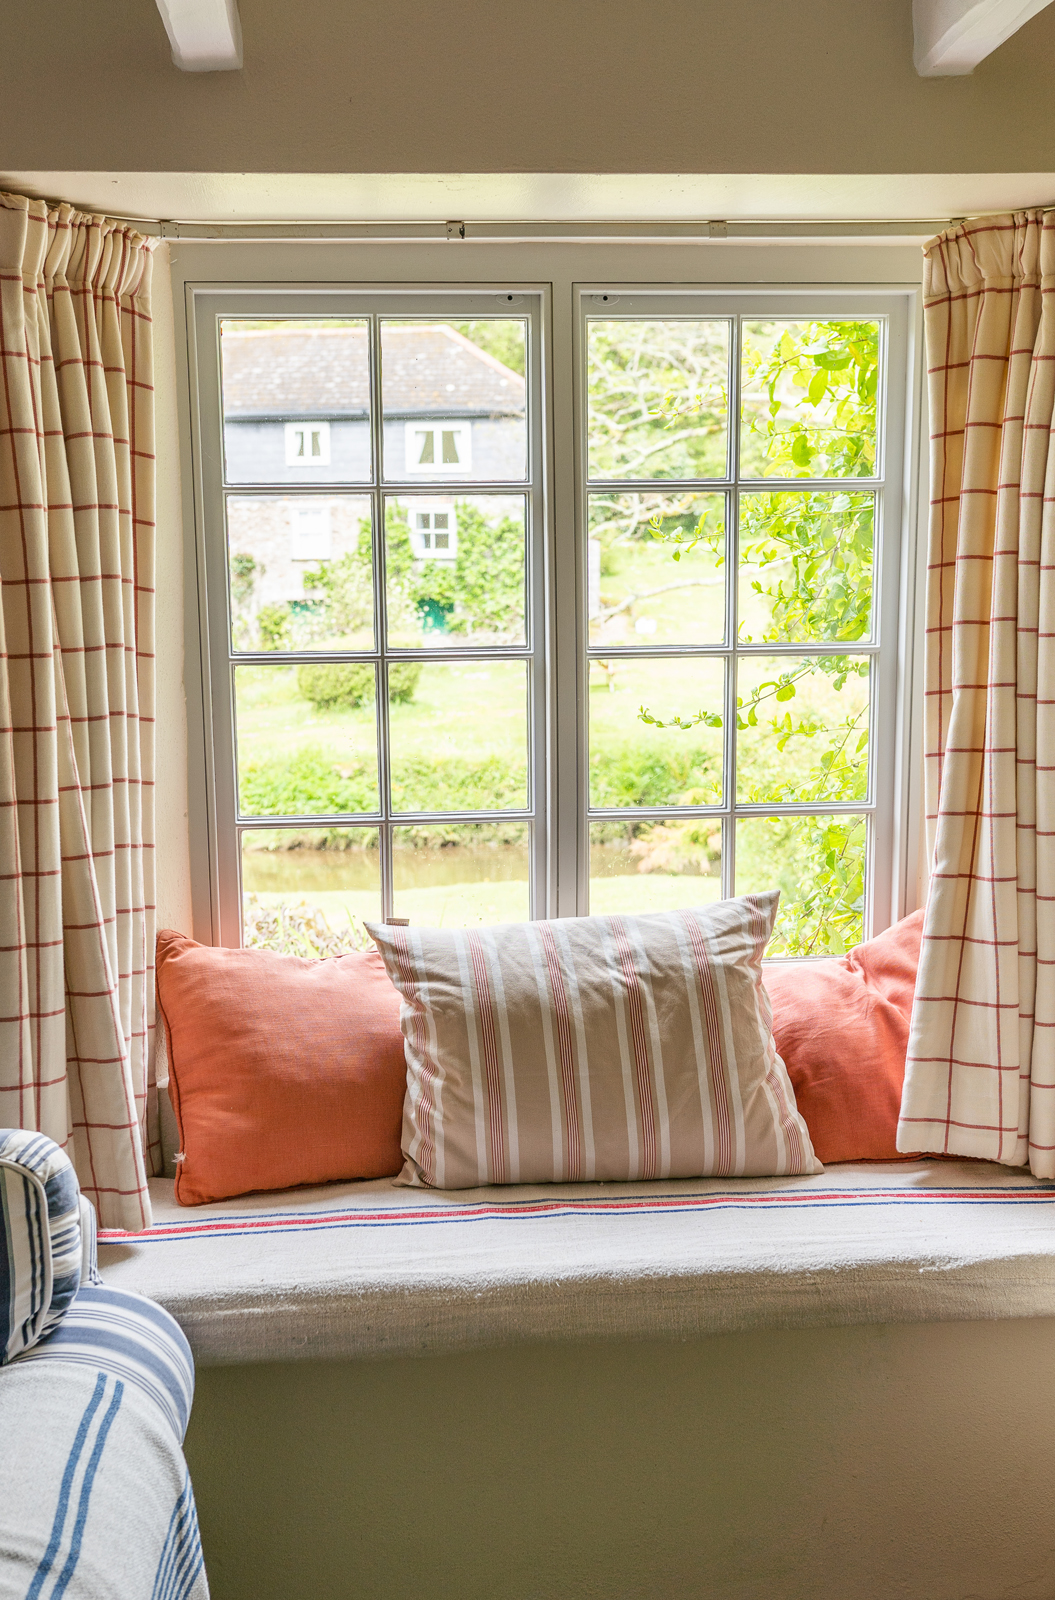 Sitting room window seat